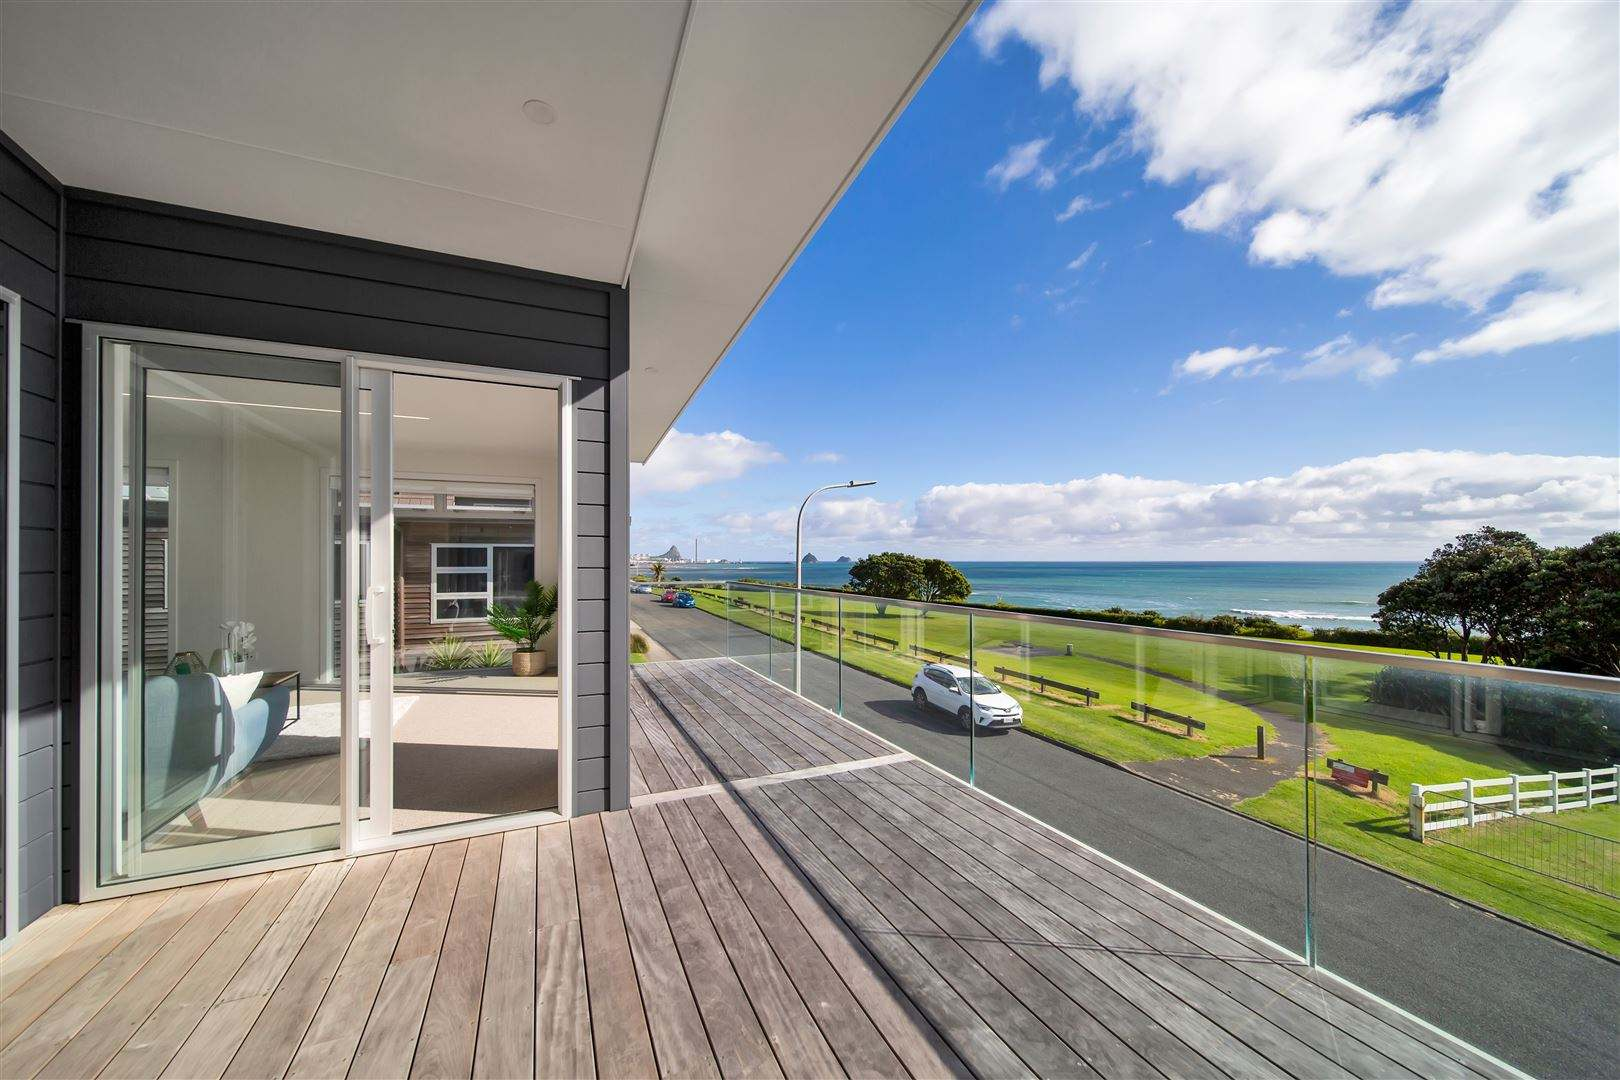 New Plymouth City Surrounds 3房 Supreme Seafront Inner City Living, Stunning Views